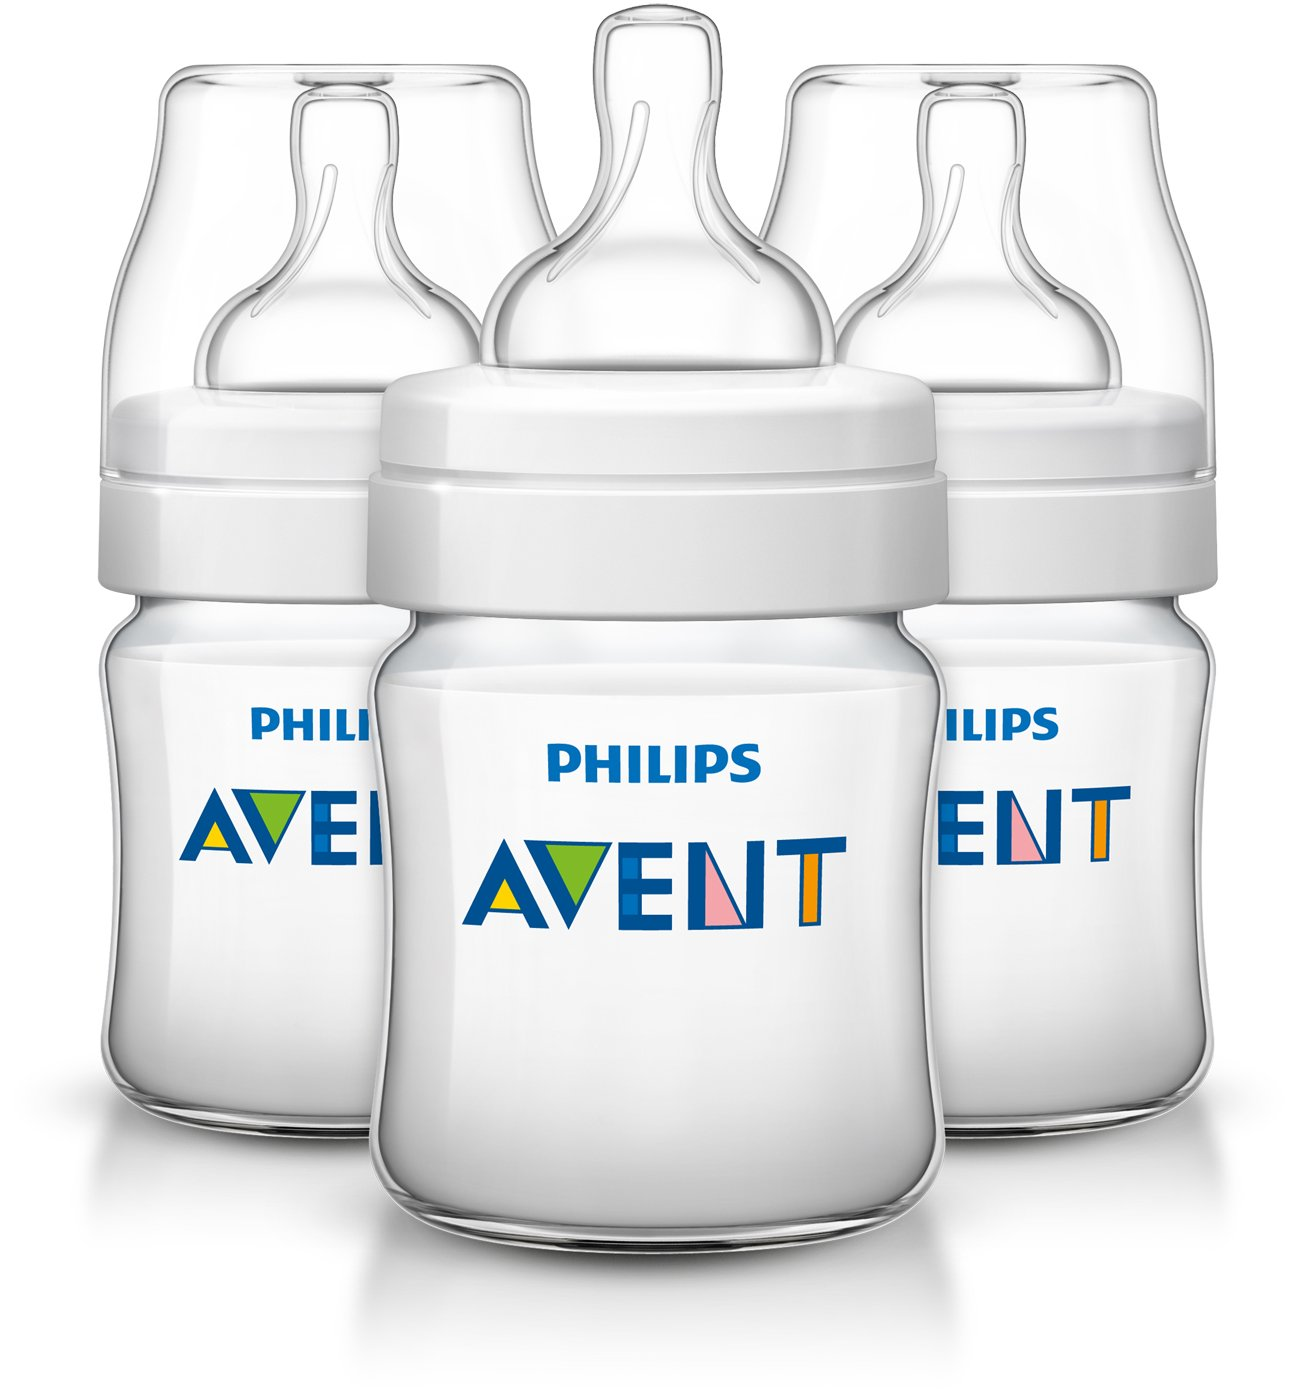 Philips Avent Anti-colic  Baby Bottles Clear, 9oz 3 Piece SCF403/37